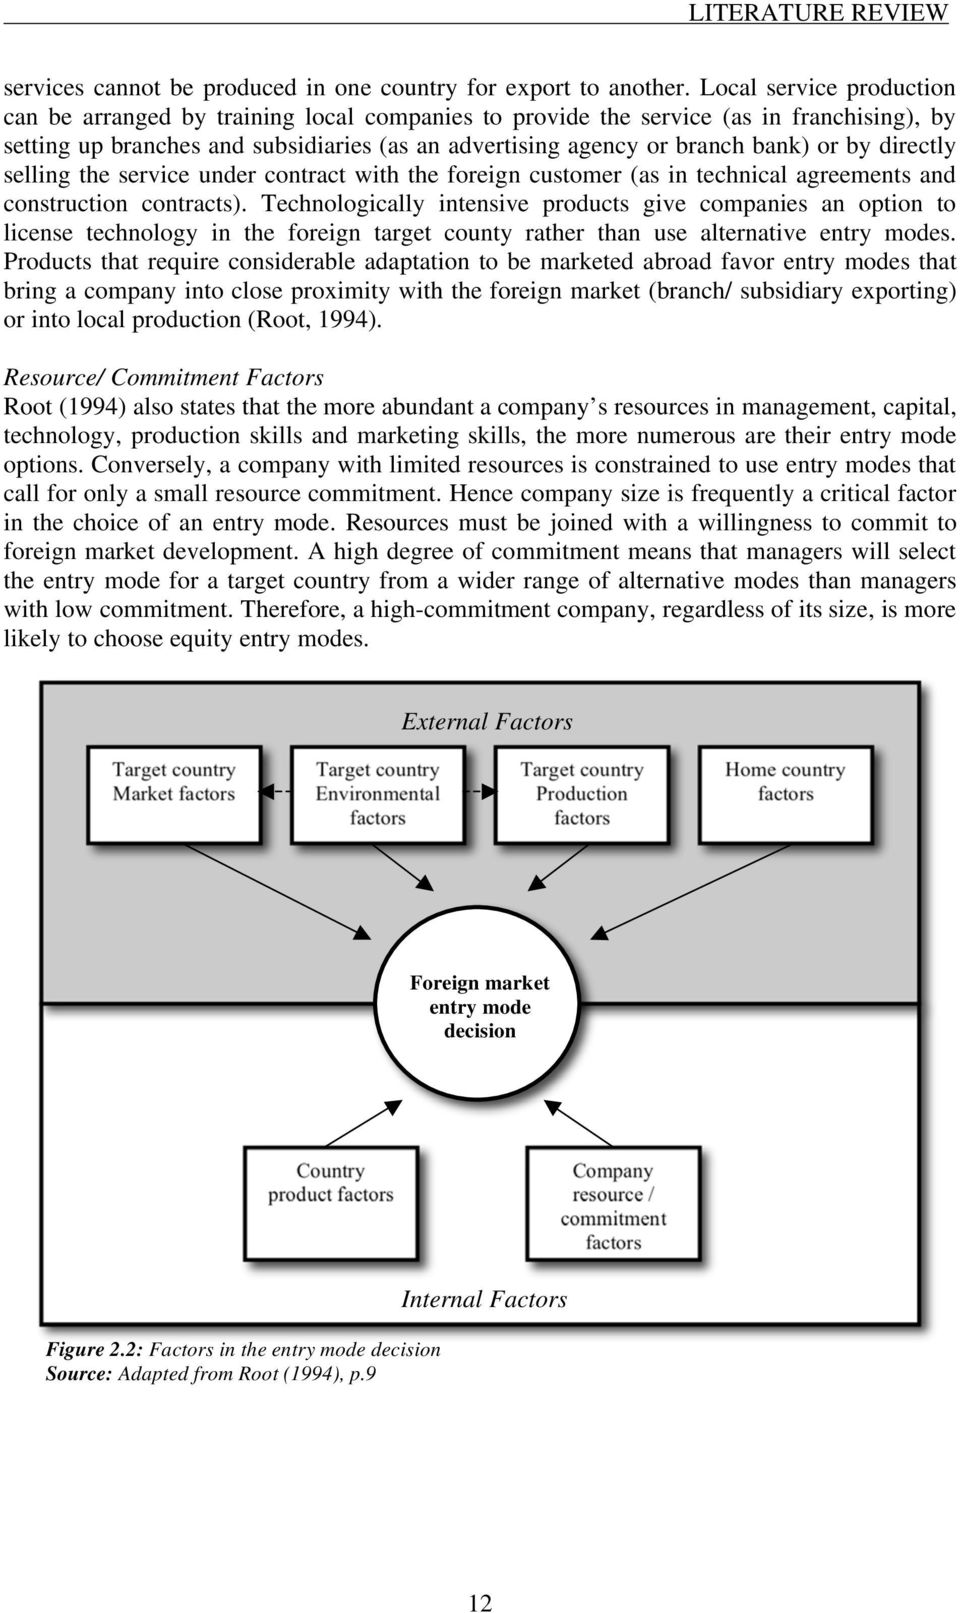 factors affecting the foreign market entry mode decision